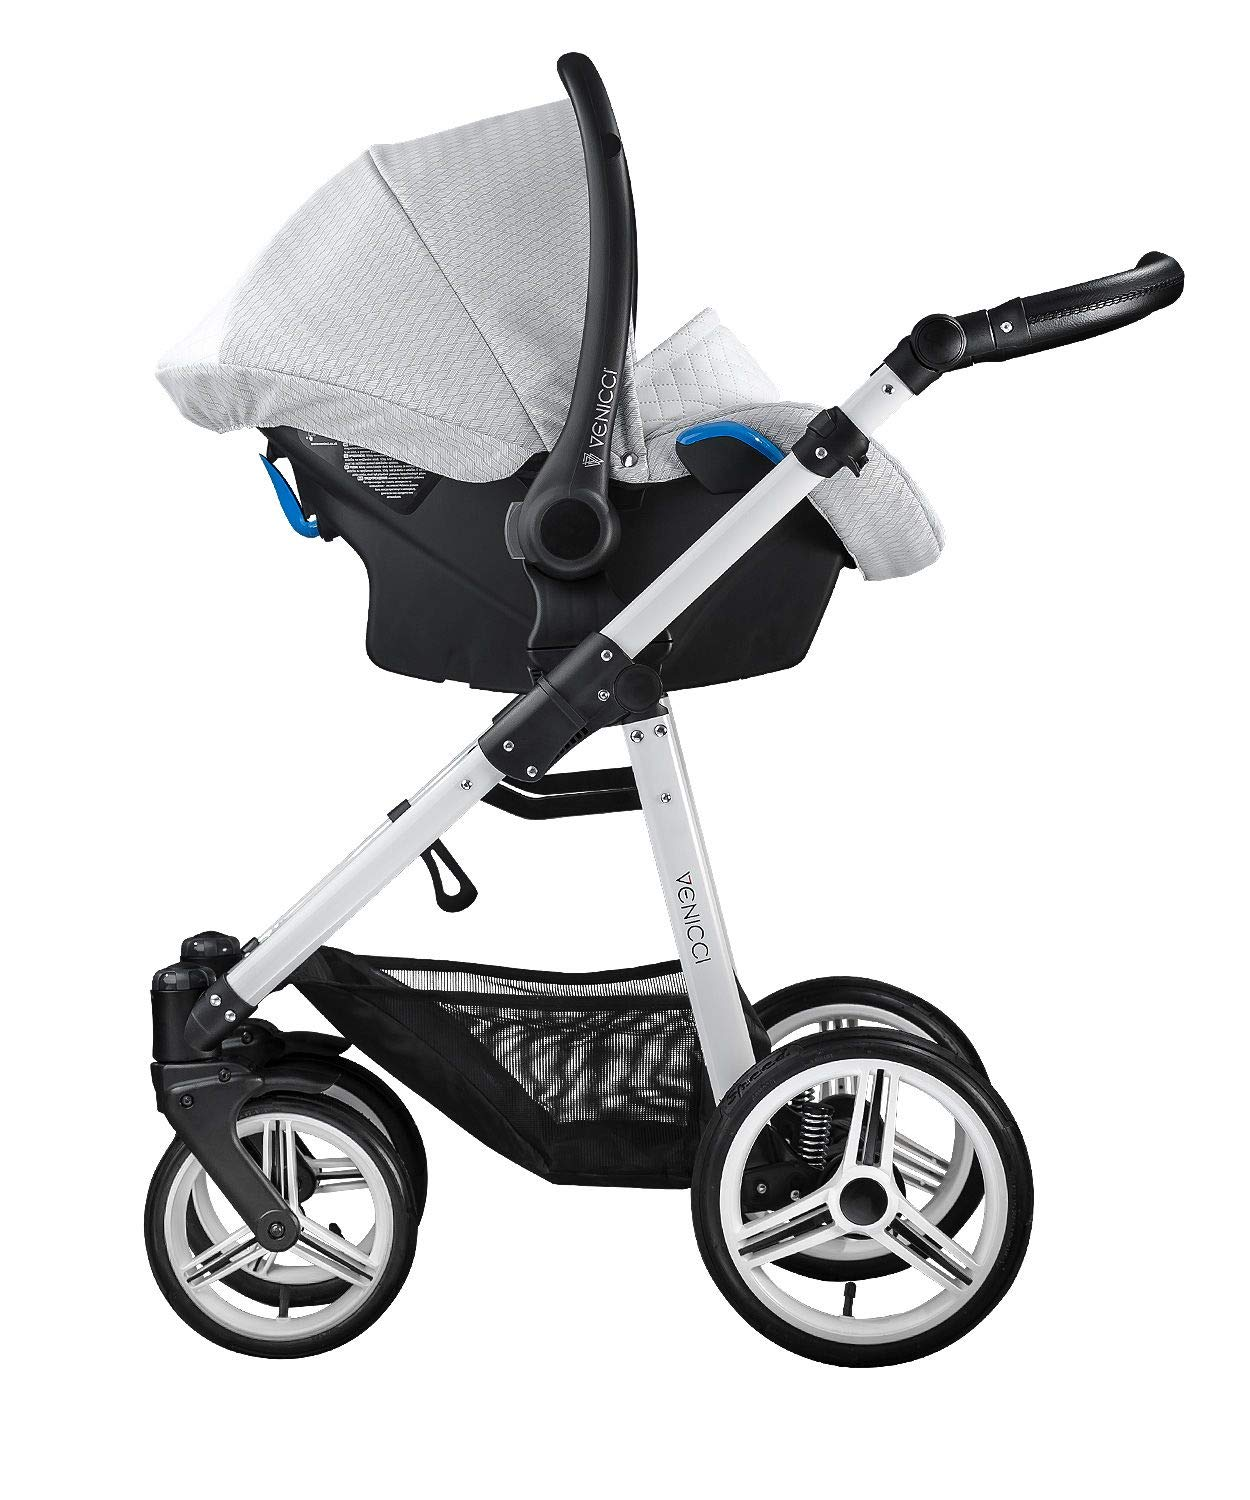 Venicci Pure 3-in-1 Travel System - Stone Grey - with Carrycot + Car Seat + Changing Bag + Apron + Raincover + Mosquito Net + 5-Point Harness and UV 50+ Fabric + Car Seat Adapters + Cup Holder  3 in 1 Travel System with included Group 0+ Car Seat Suitable for your baby from birth until 36 months 5-point harness to enhance the safety of your child 4